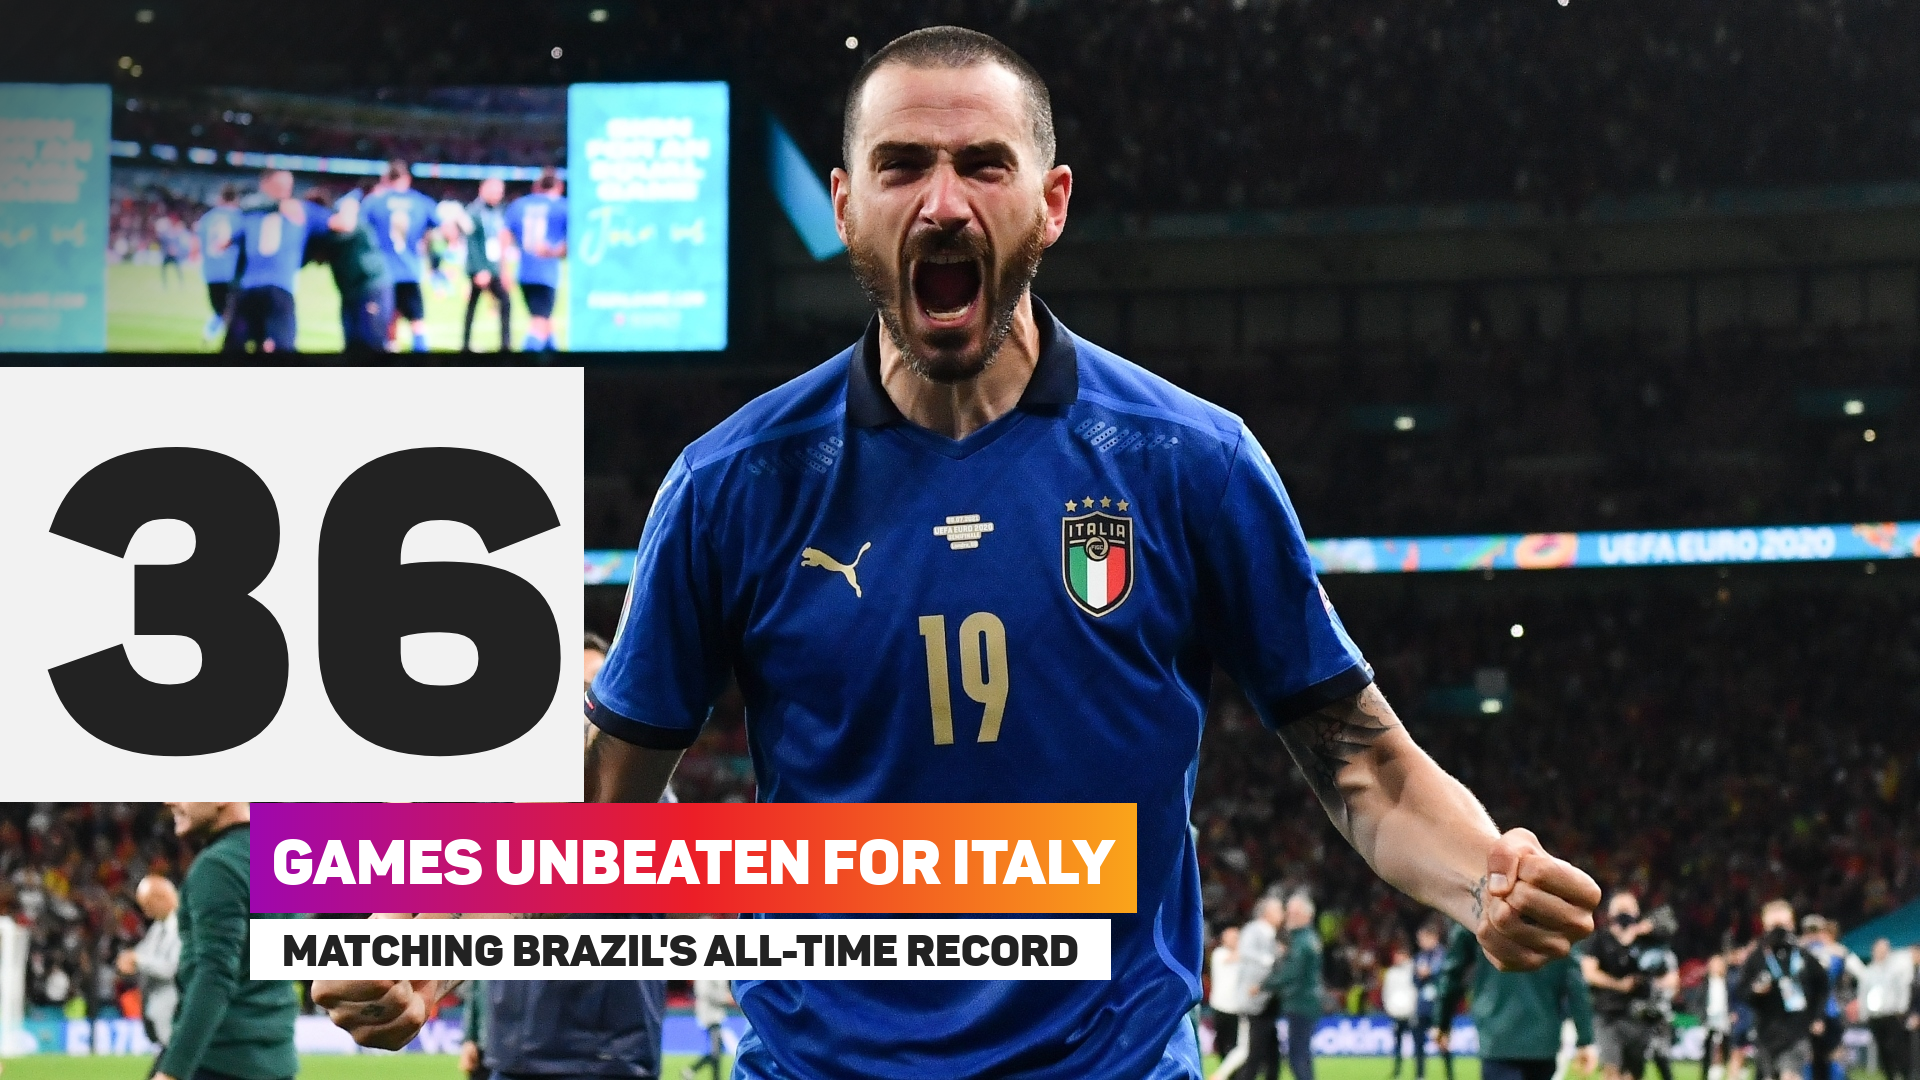 Italy have gone 36 games without defeat